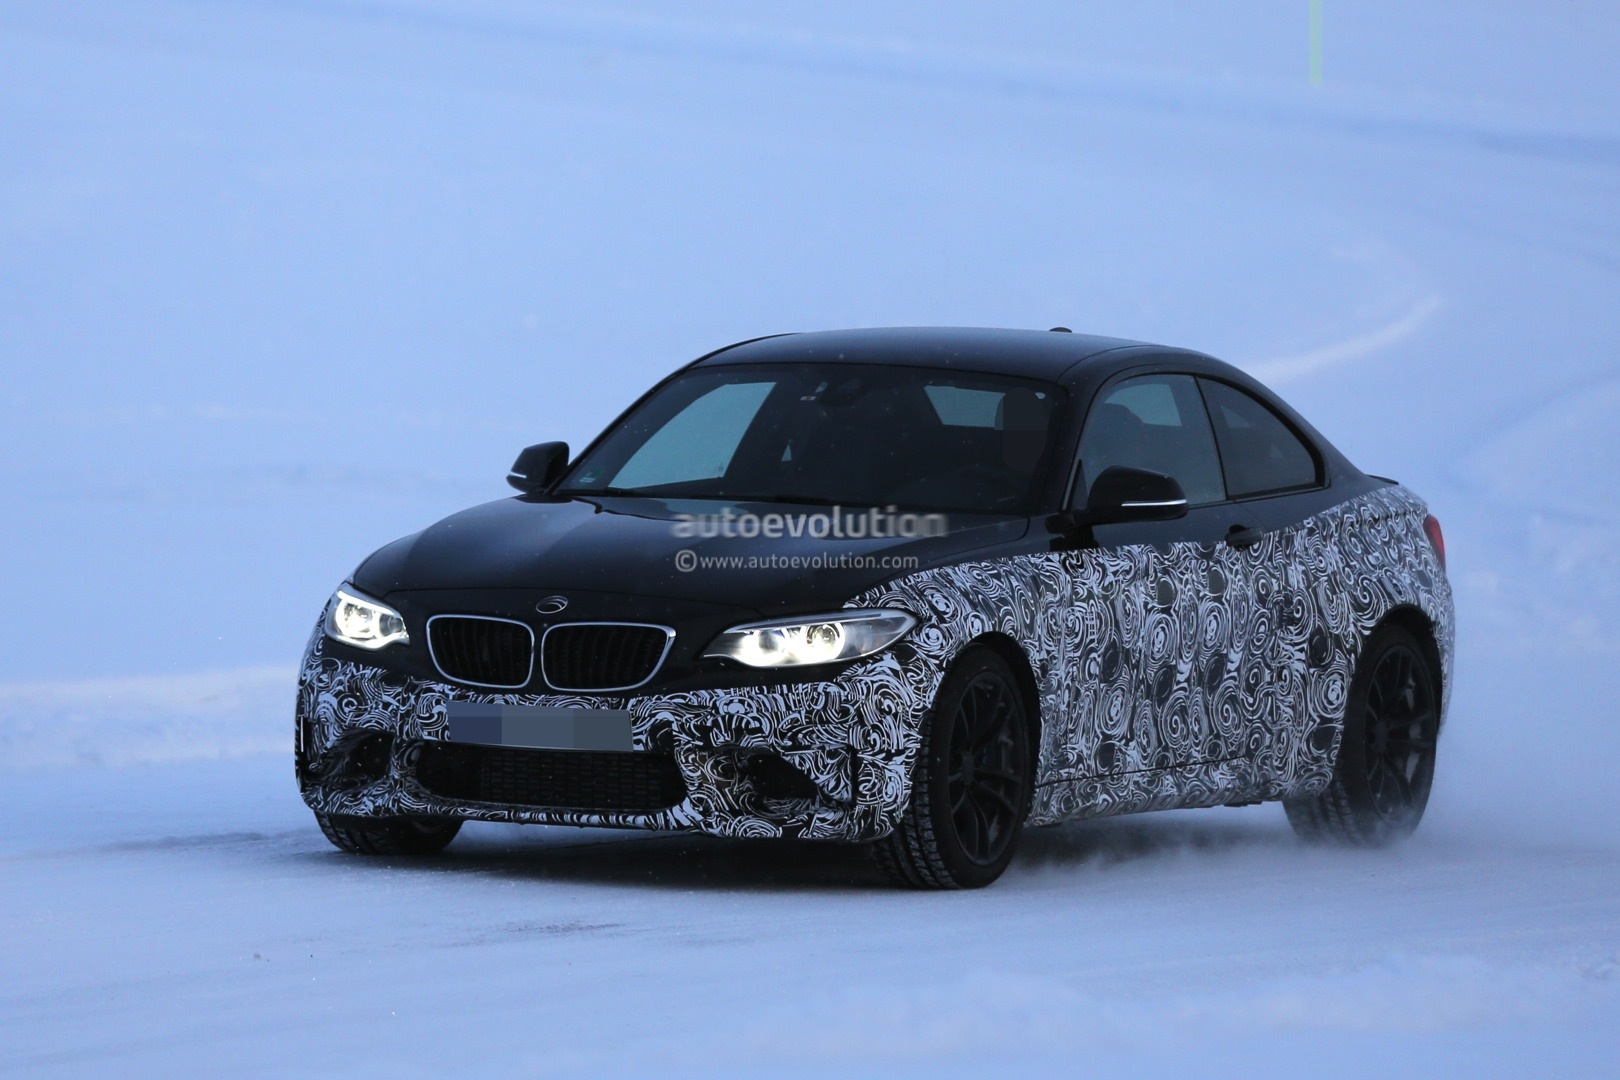 black on black 2016 bmw f87 m2 spied testing in sweden. Black Bedroom Furniture Sets. Home Design Ideas